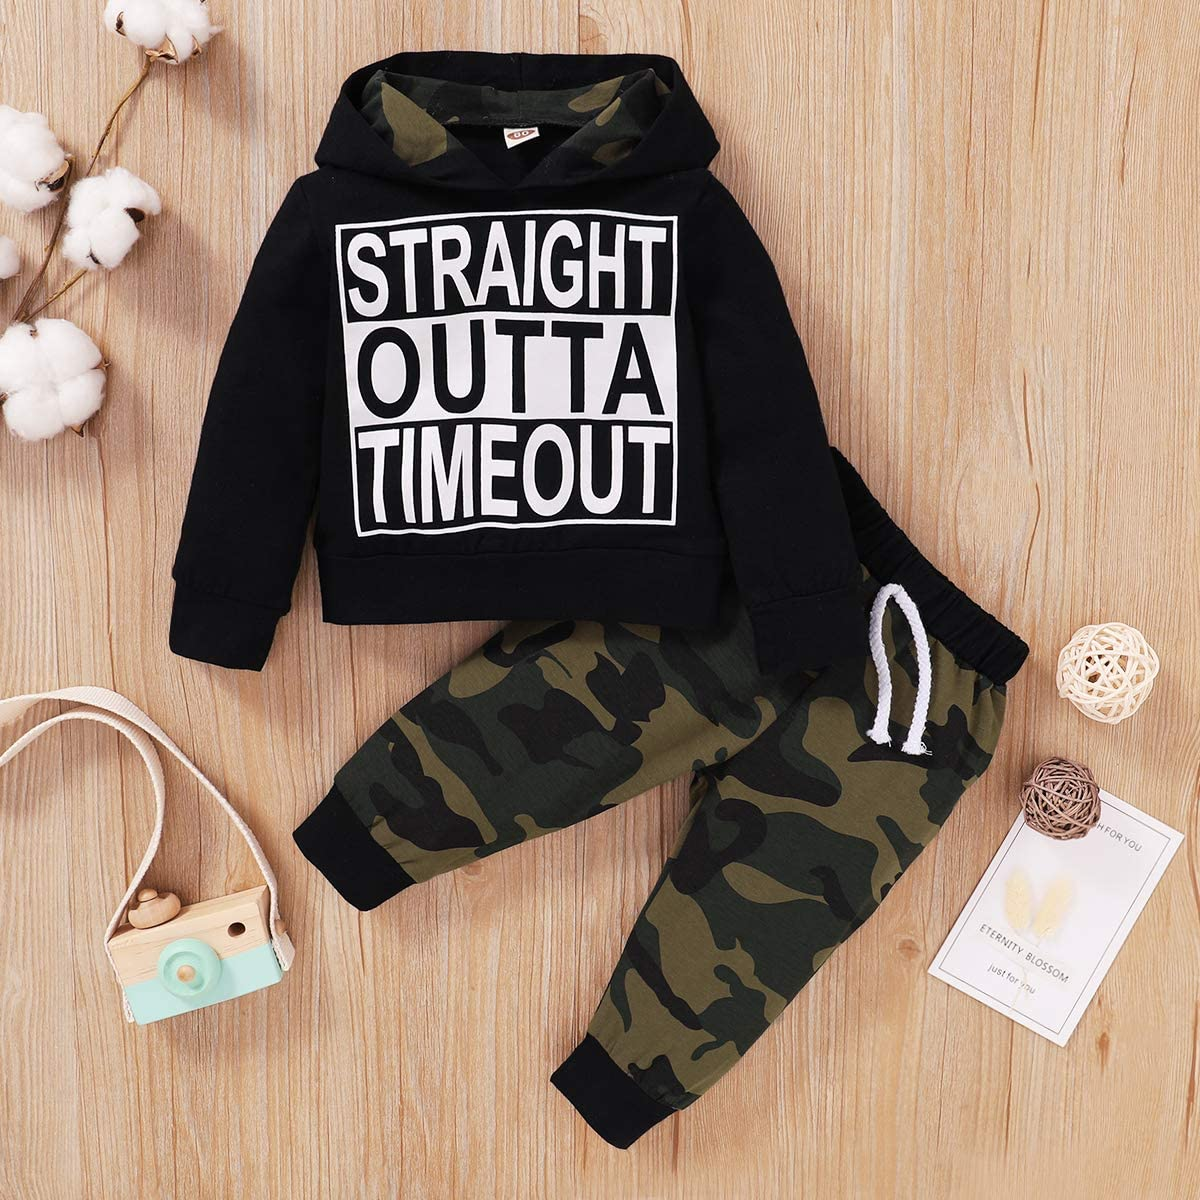 Toddler Baby Boys Clothes Letter Printed Hoodie Sweatshirt Tops+Camouflage Long Pants 2PCS Outfits Set